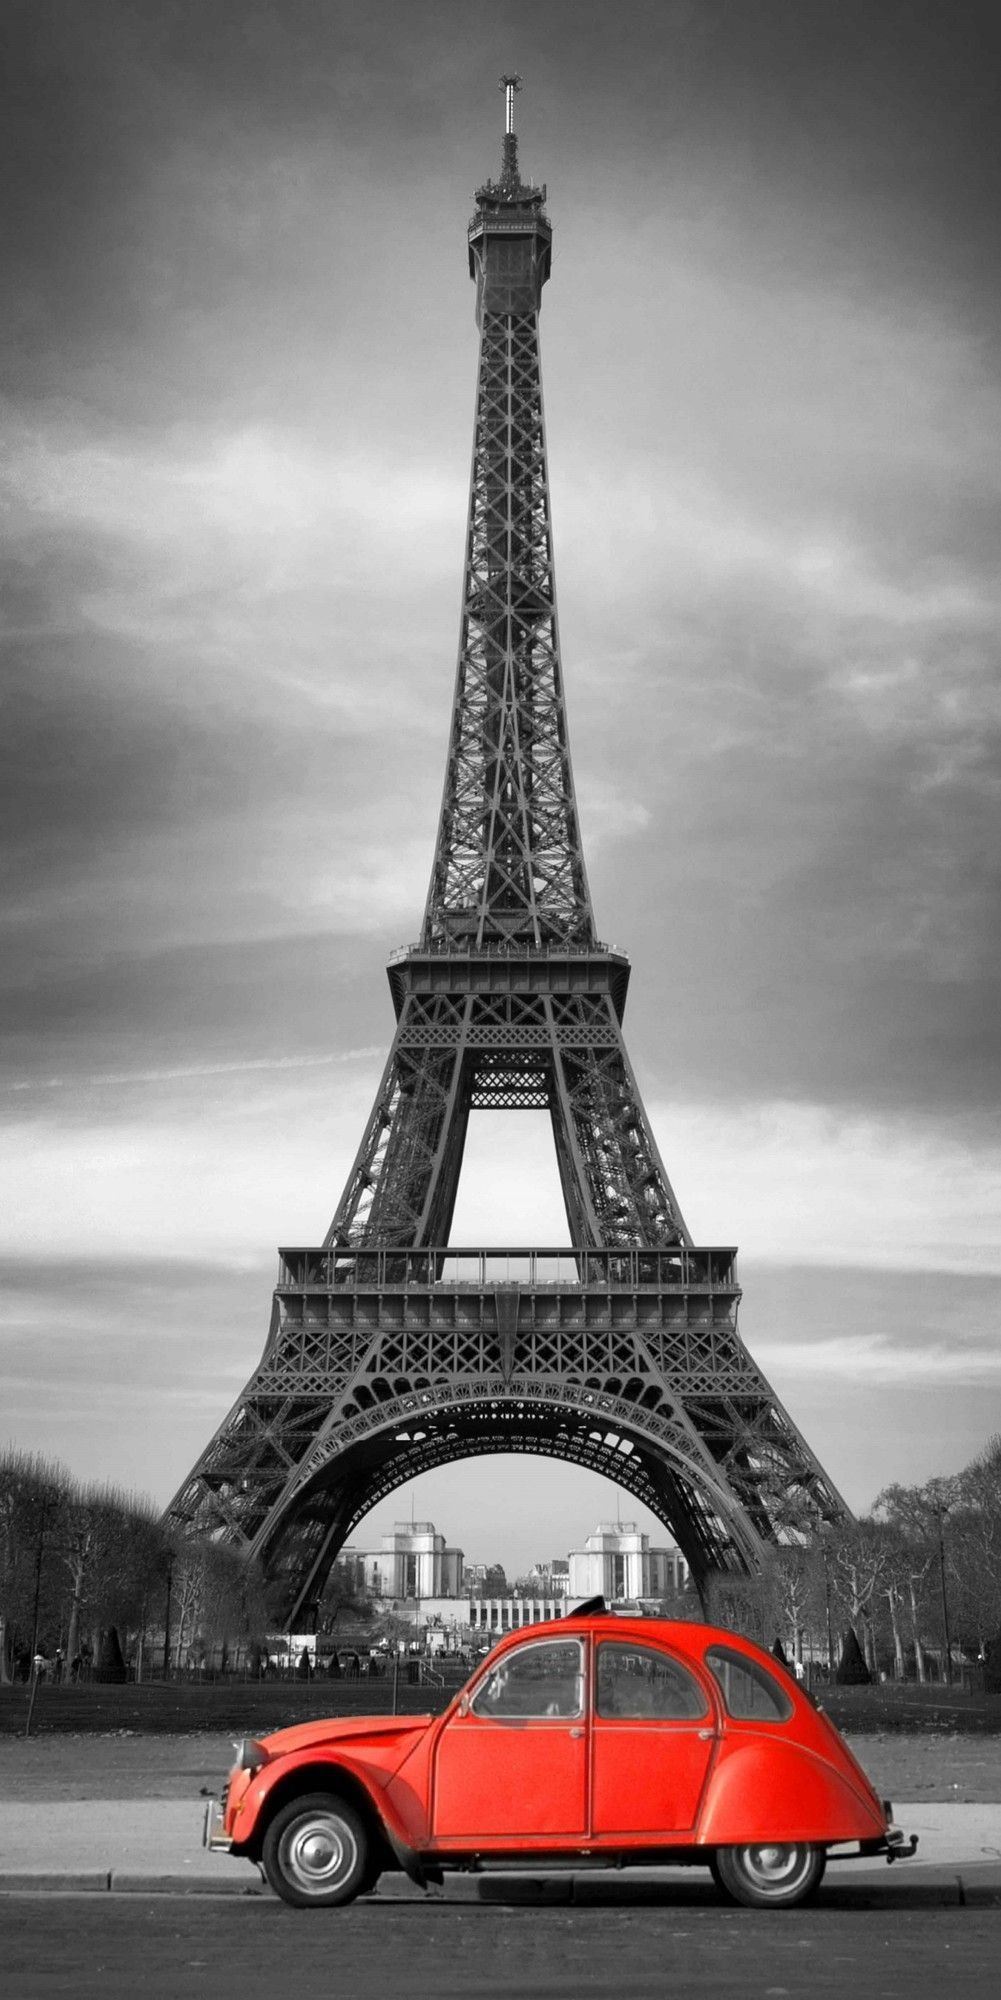 Eiffel Tower Paris - All You Need to Know Before You Go - Interesting Facts #eiffeltower